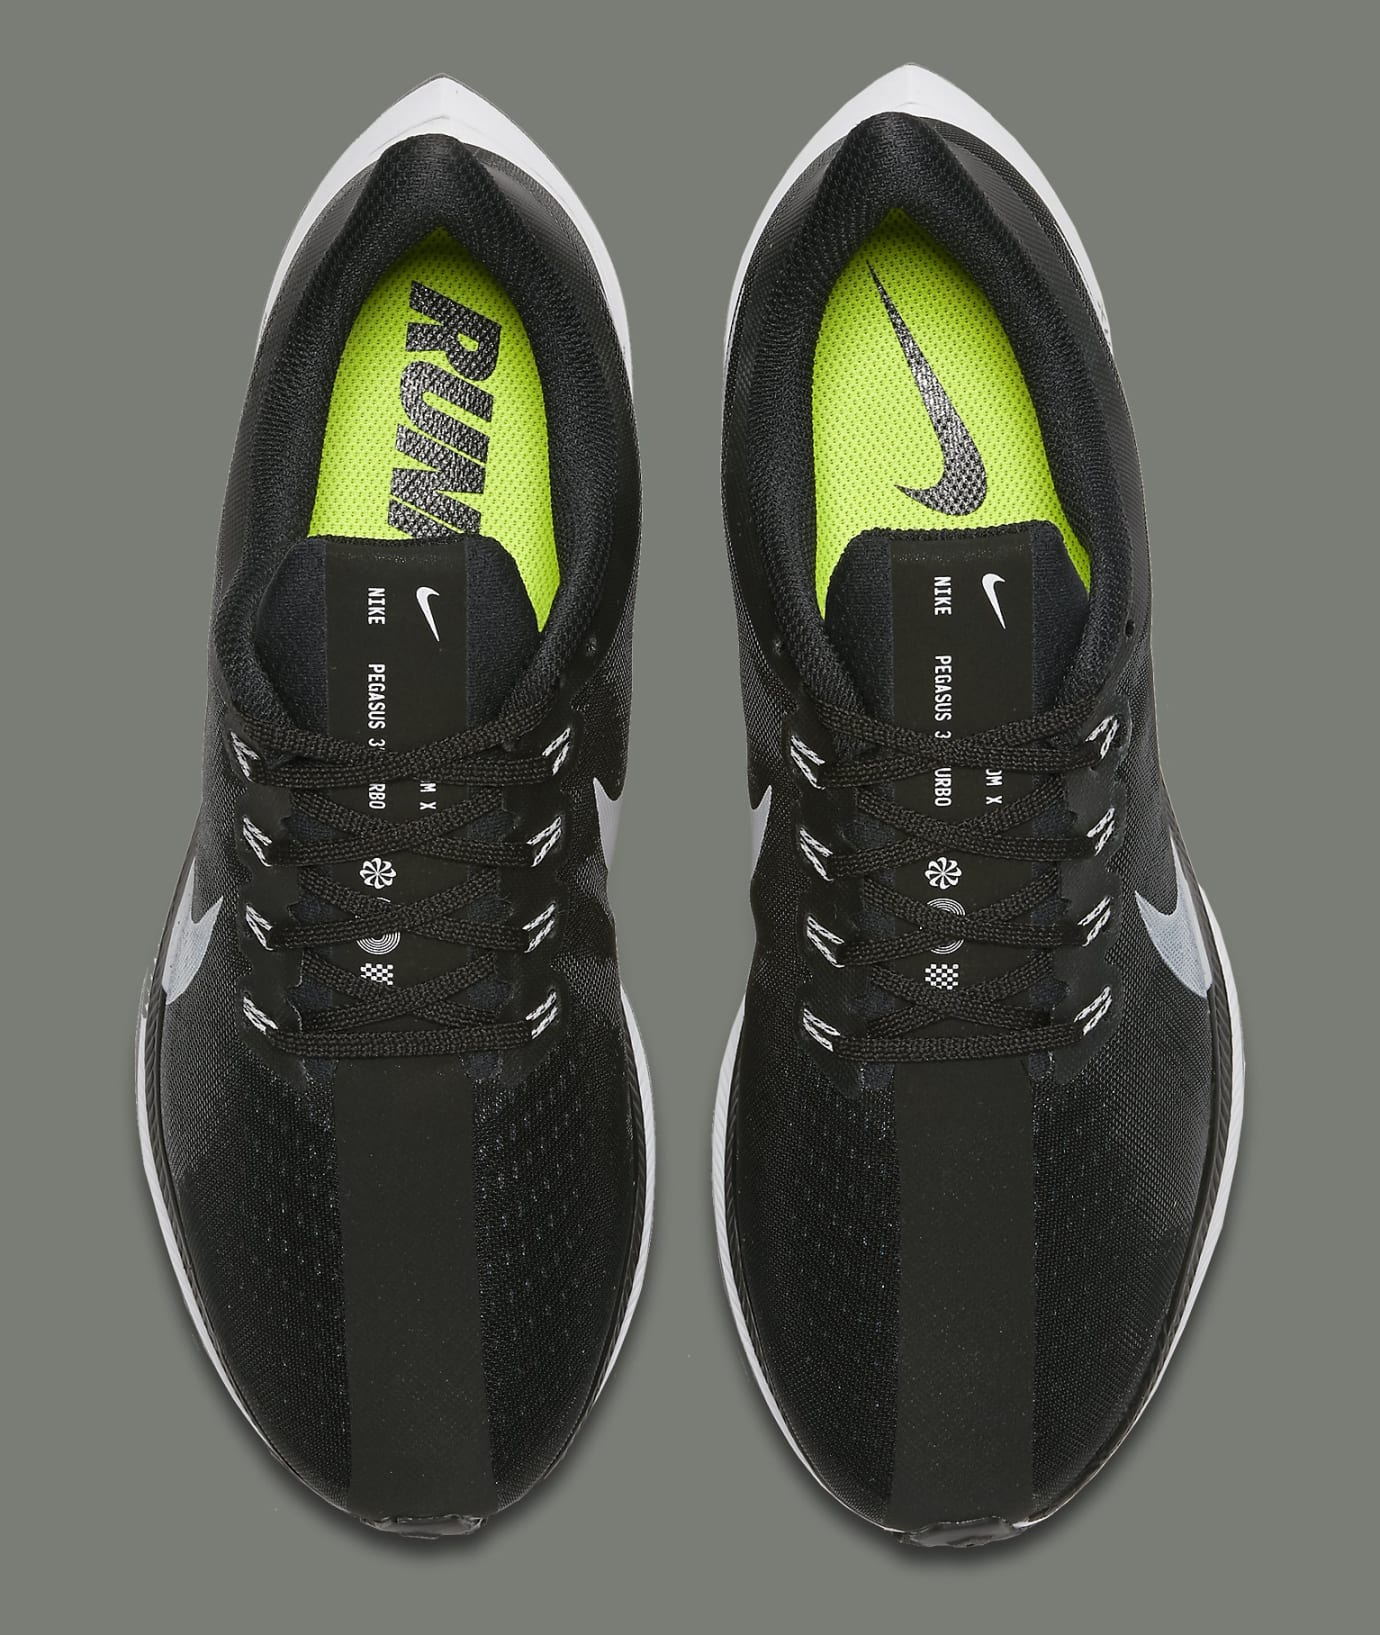 best loved 029c3 3a2ce Nike Zoom Pegasus Turbo Black Metallic Silver Release Date ...